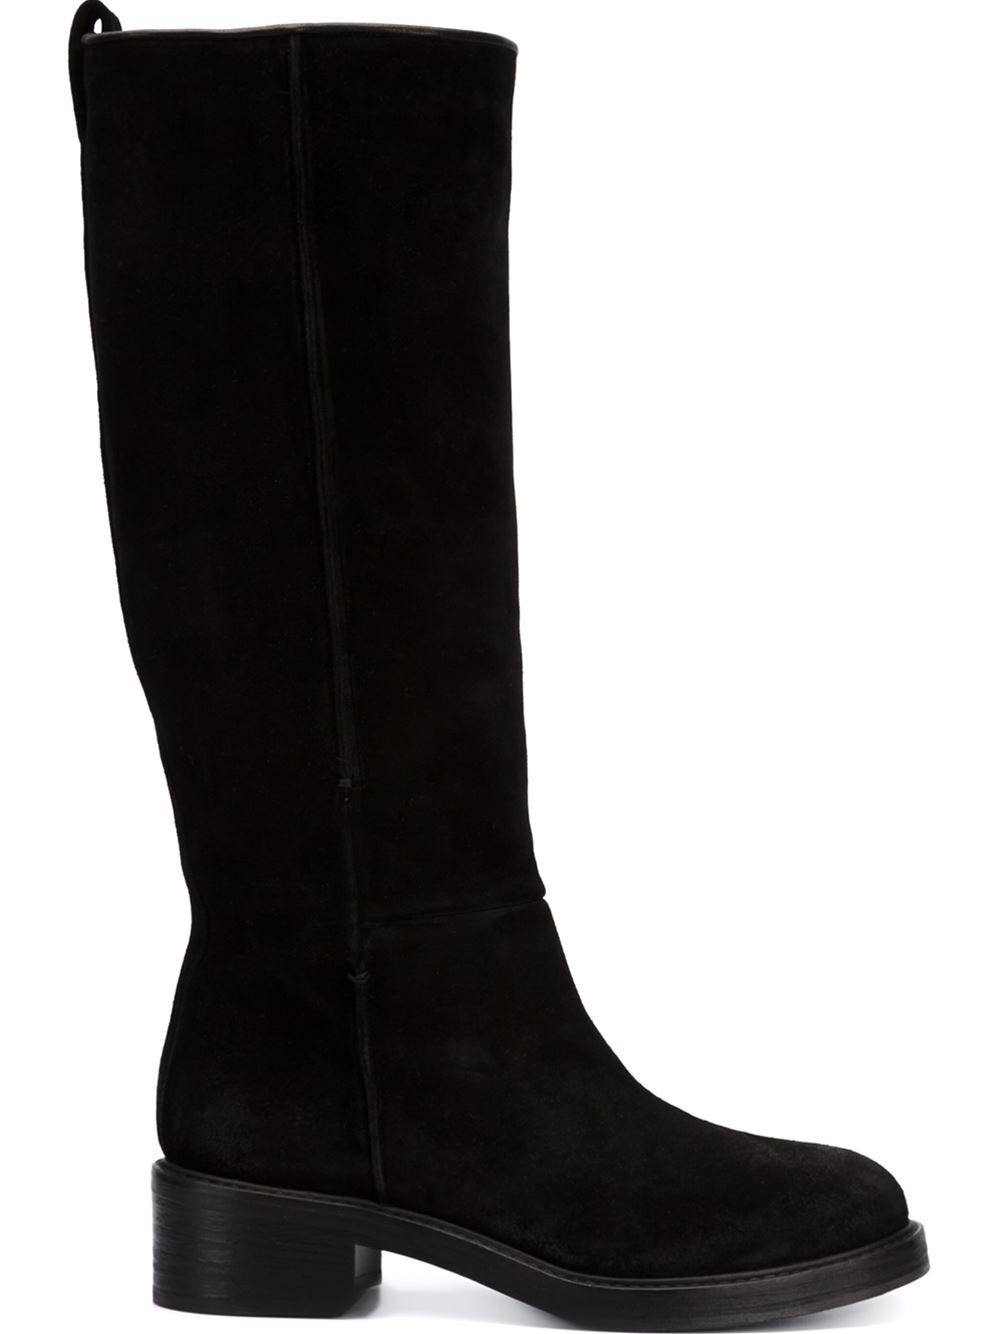 Ankle boots generally have a shaft height of less than 8 inches (20 cm), calf-length boots 8–15 inches (20–38 cm), knee-length boots 15–19 inches (38–48 cm), while over-the knee boots have shaft lengths of 19 inches (38 cm) or more; however these divisions are arbitrary and at the boundaries the decision as to whether a boot is, for example, calf-length or knee-length is largely subjective.